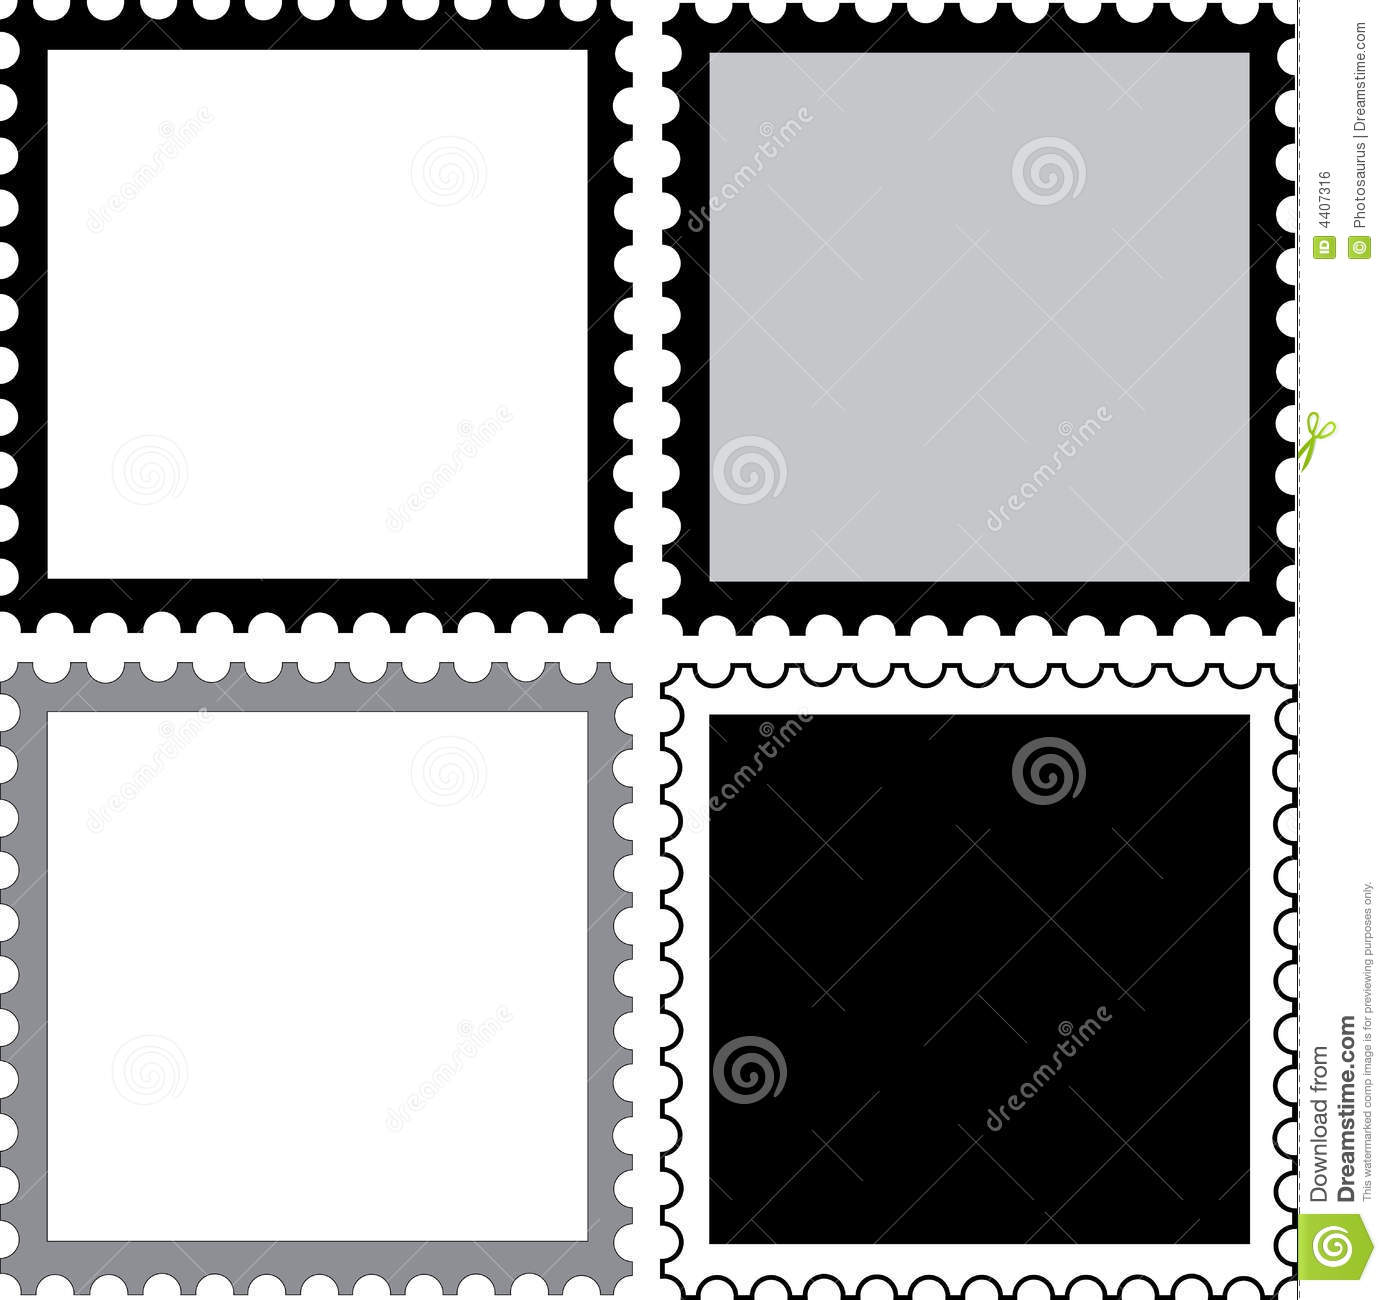 Square Stamps To Fill Royalty Free Stock Image - Image: 4407316